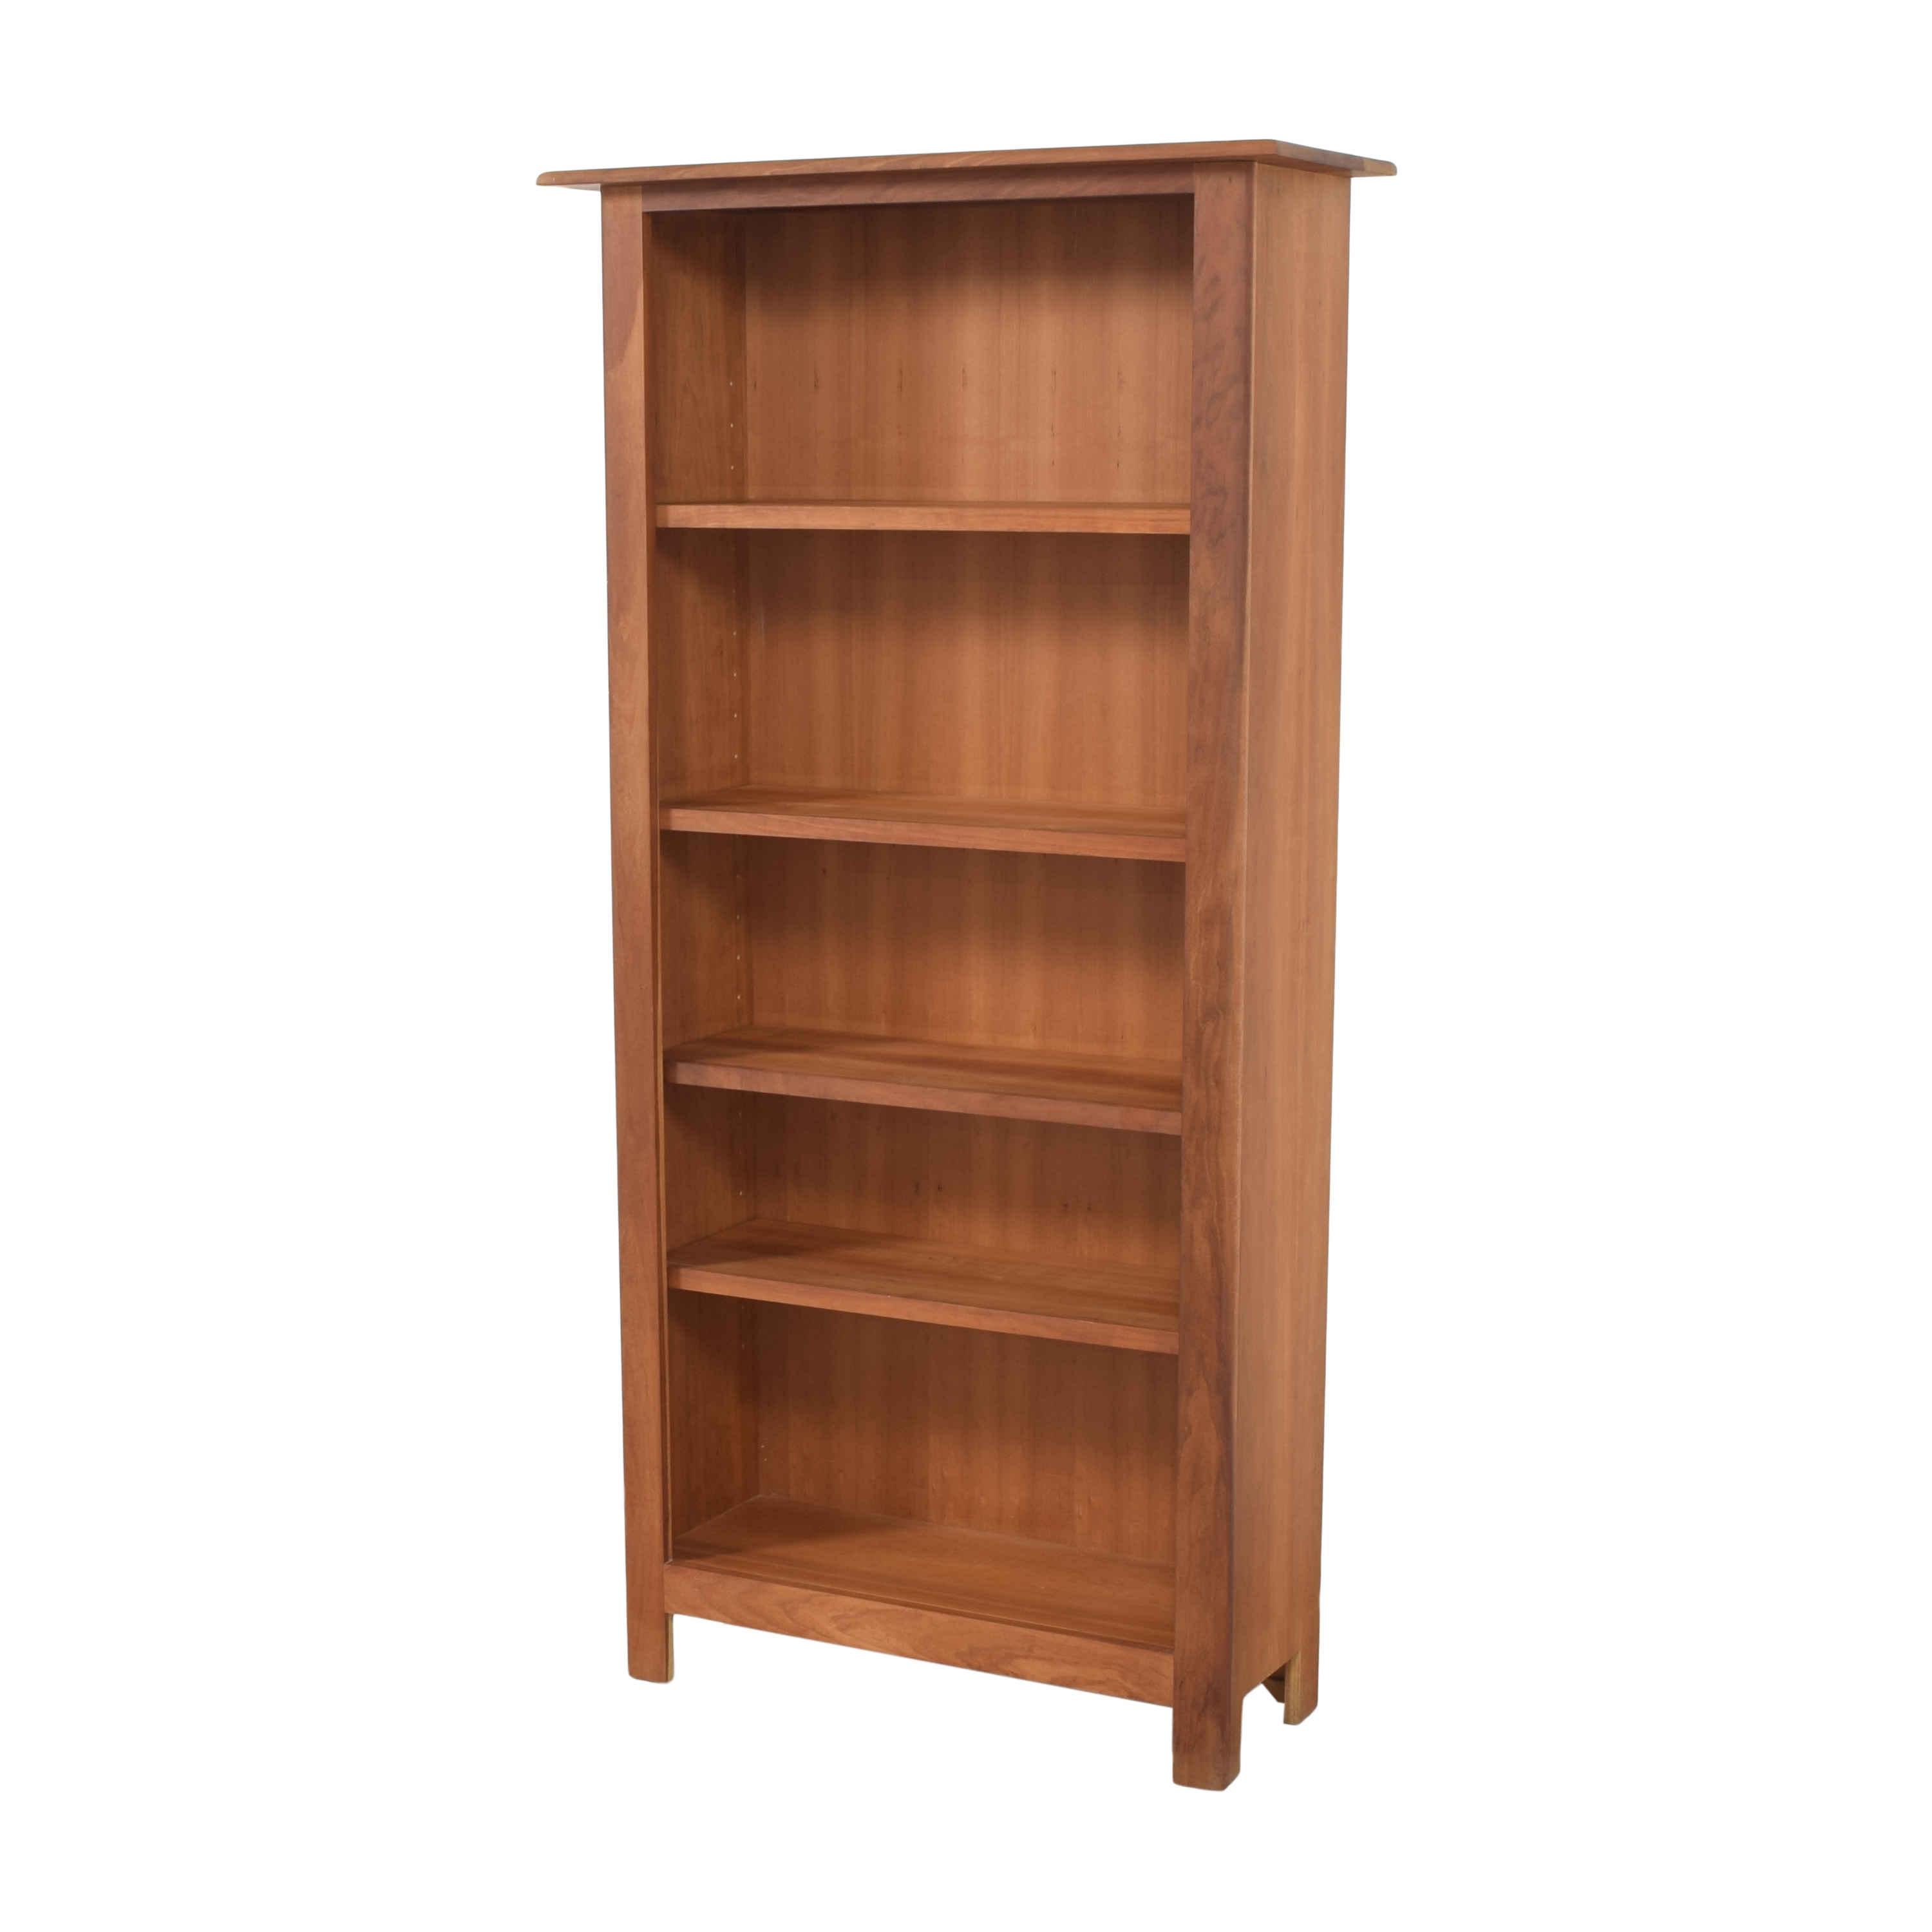 Scott Jordan Furniture Scott Jordan Furniture Tall Bookcase for sale